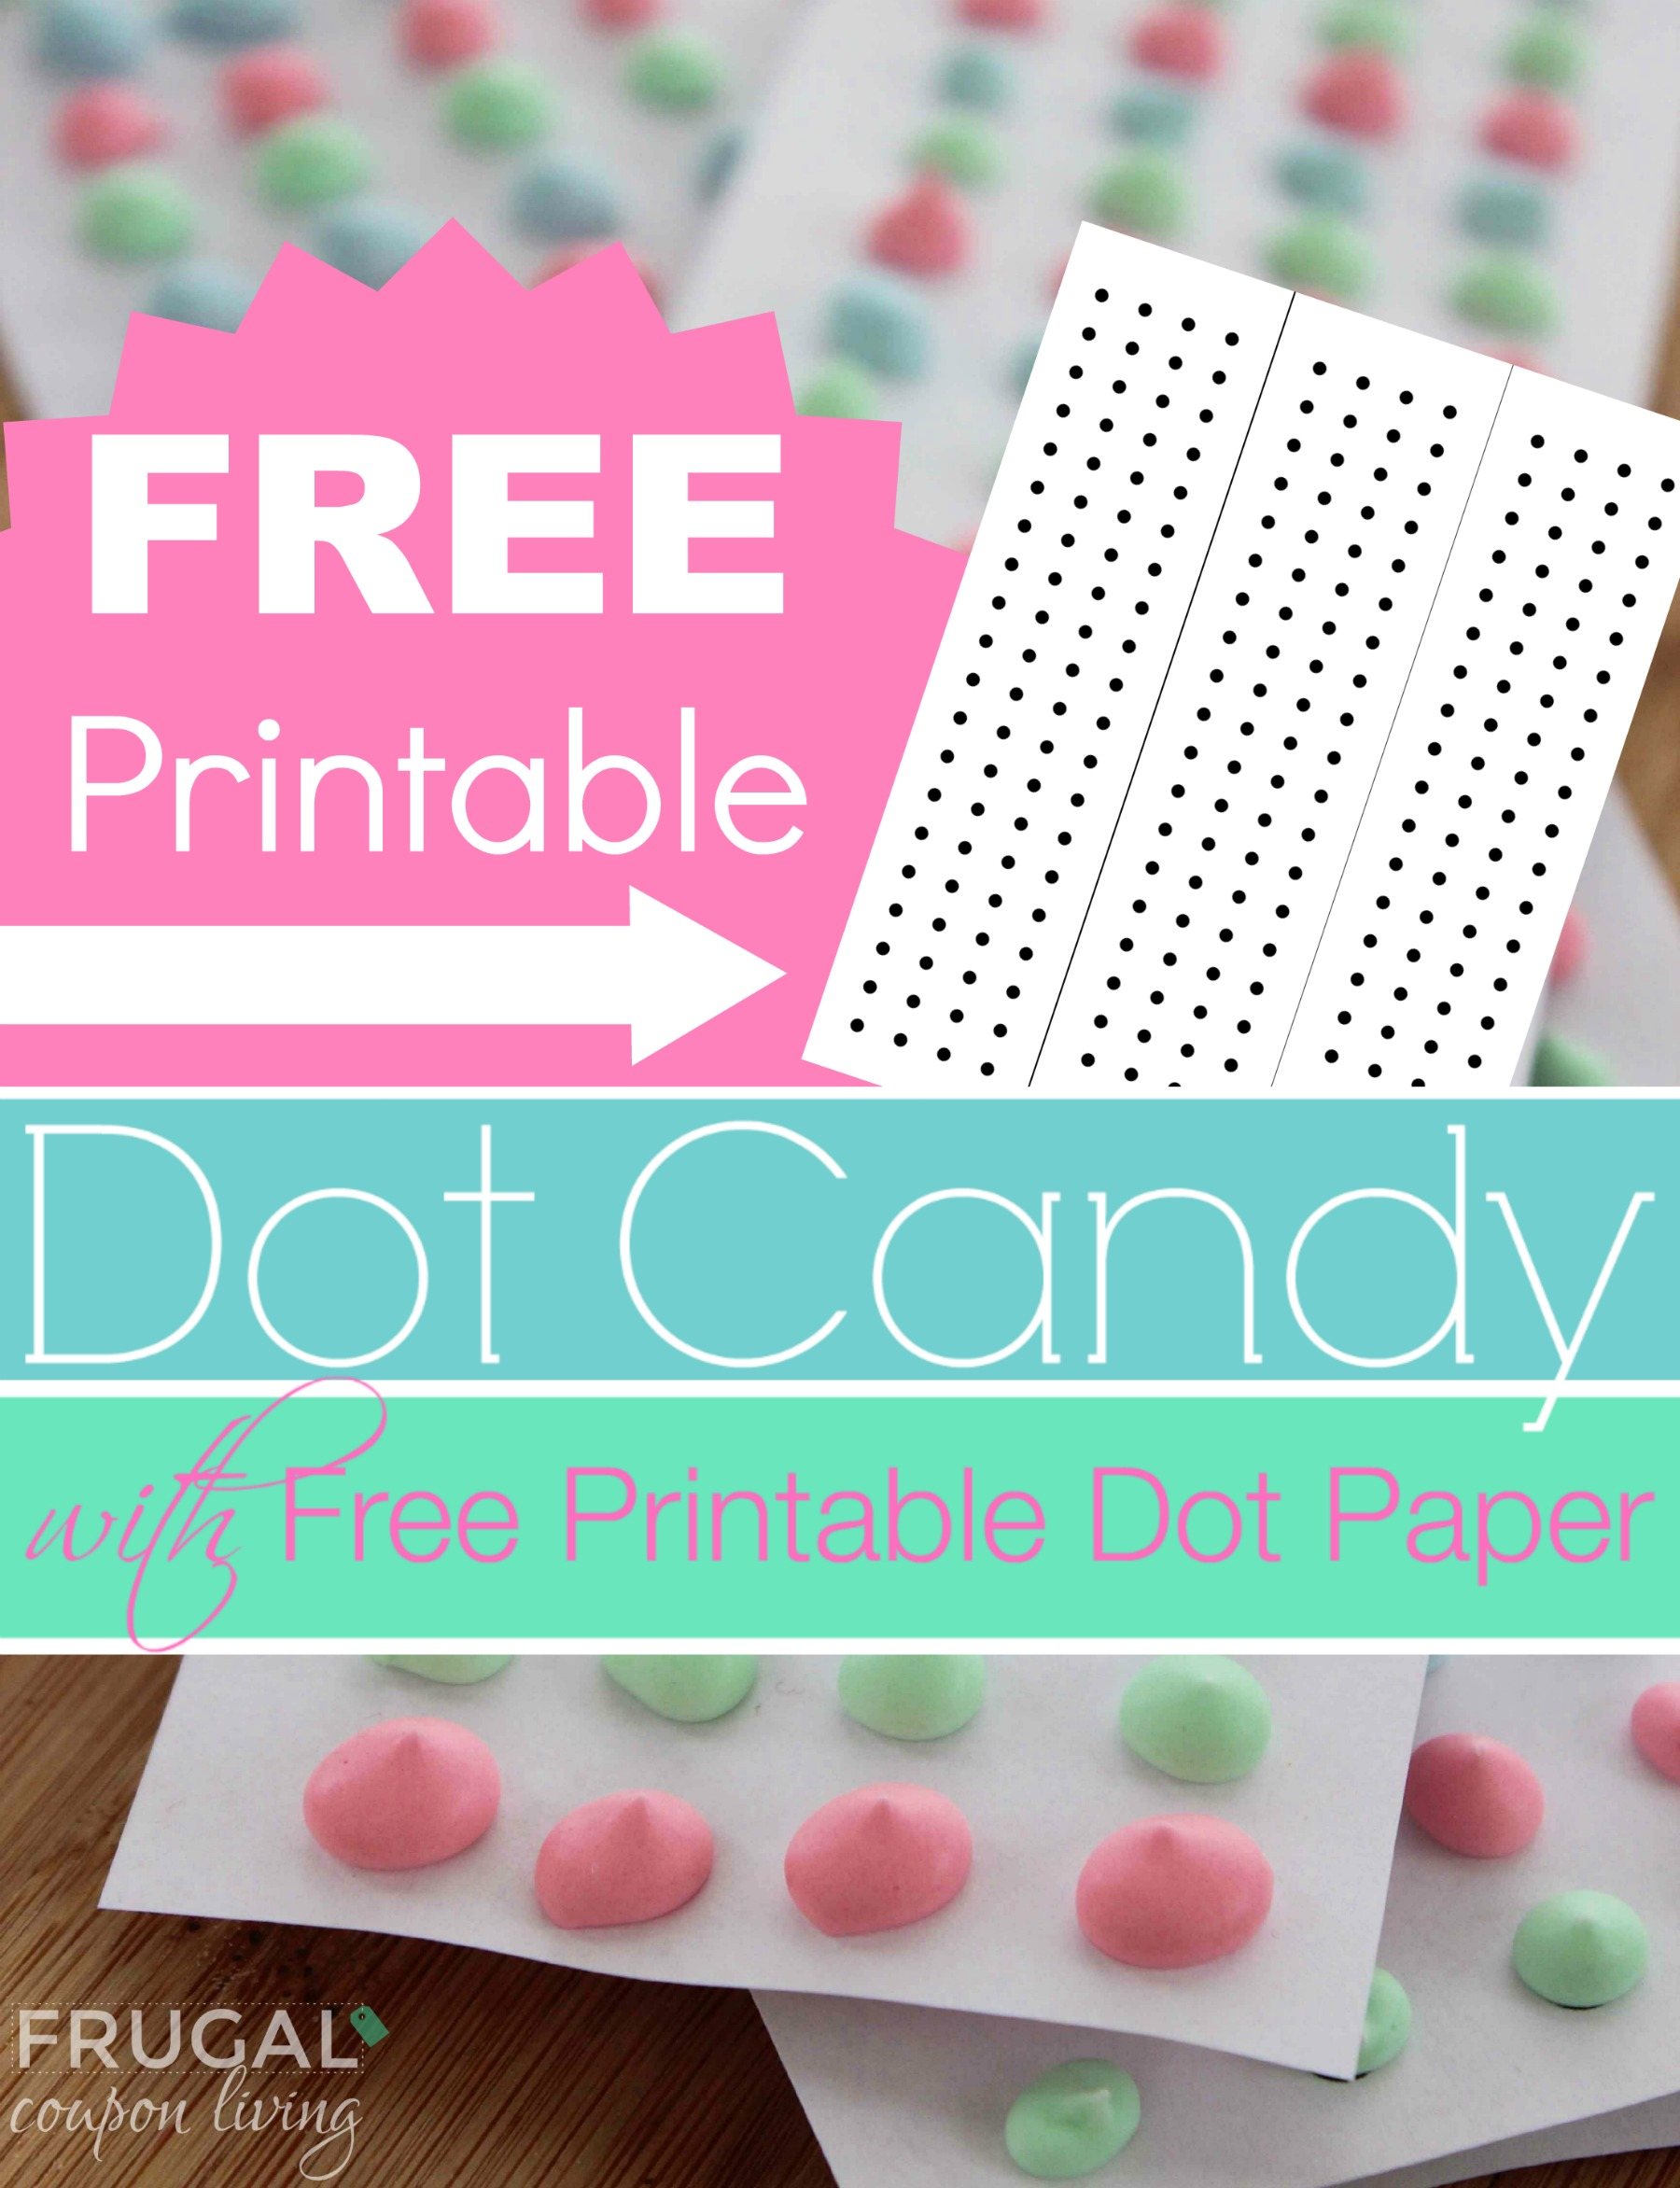 dot-candy-free-printable-frugal-coupon-living-pinterest